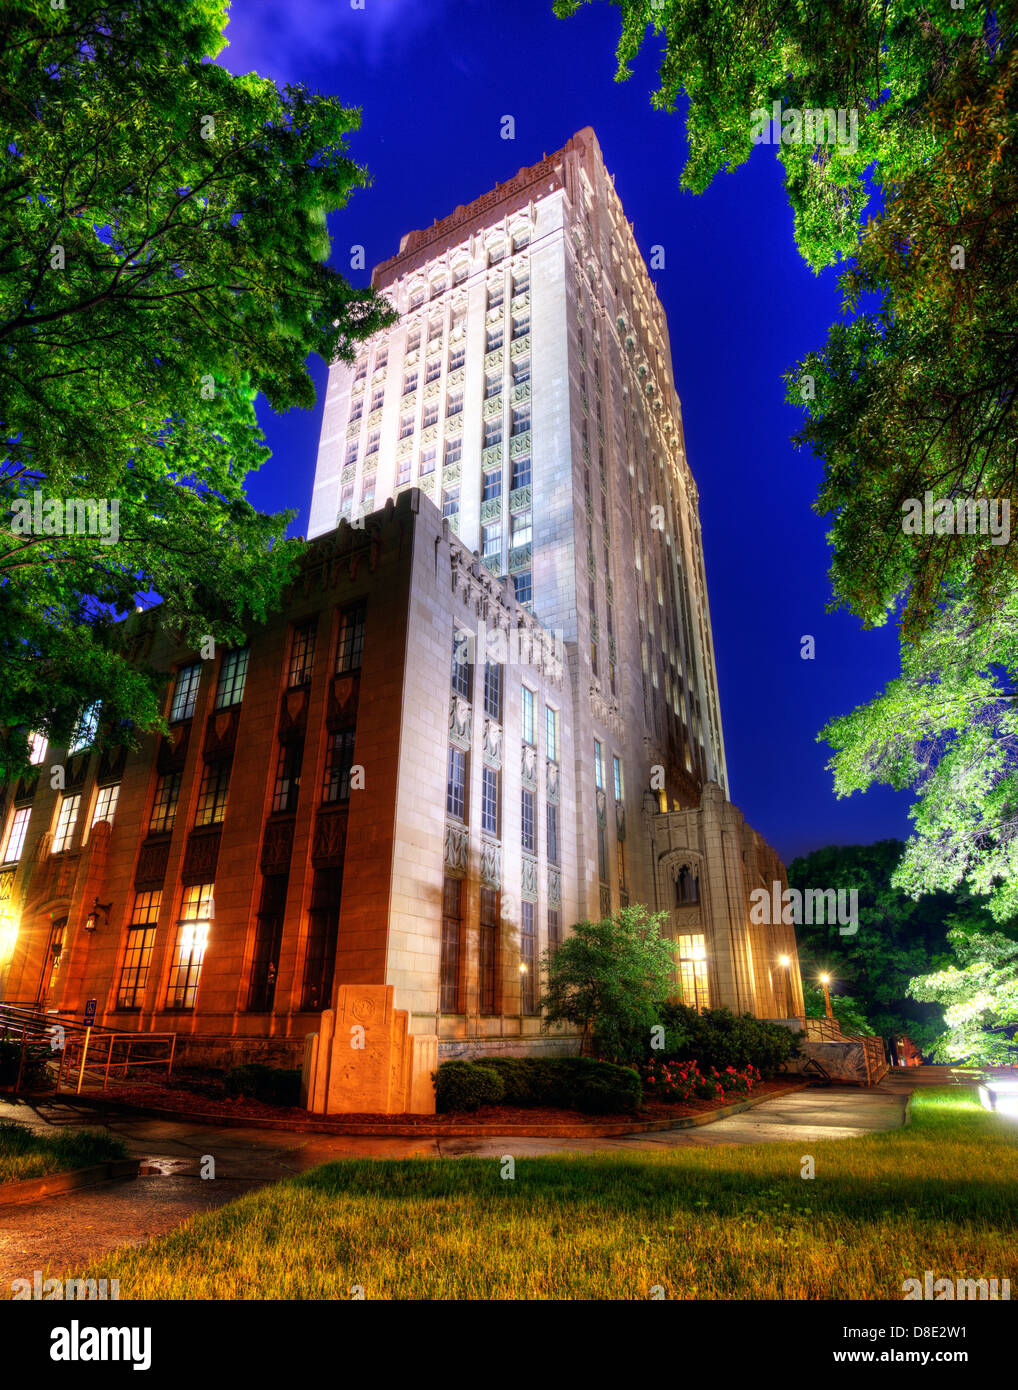 Rathaus in Atlanta, Georgia, USA. Stockbild